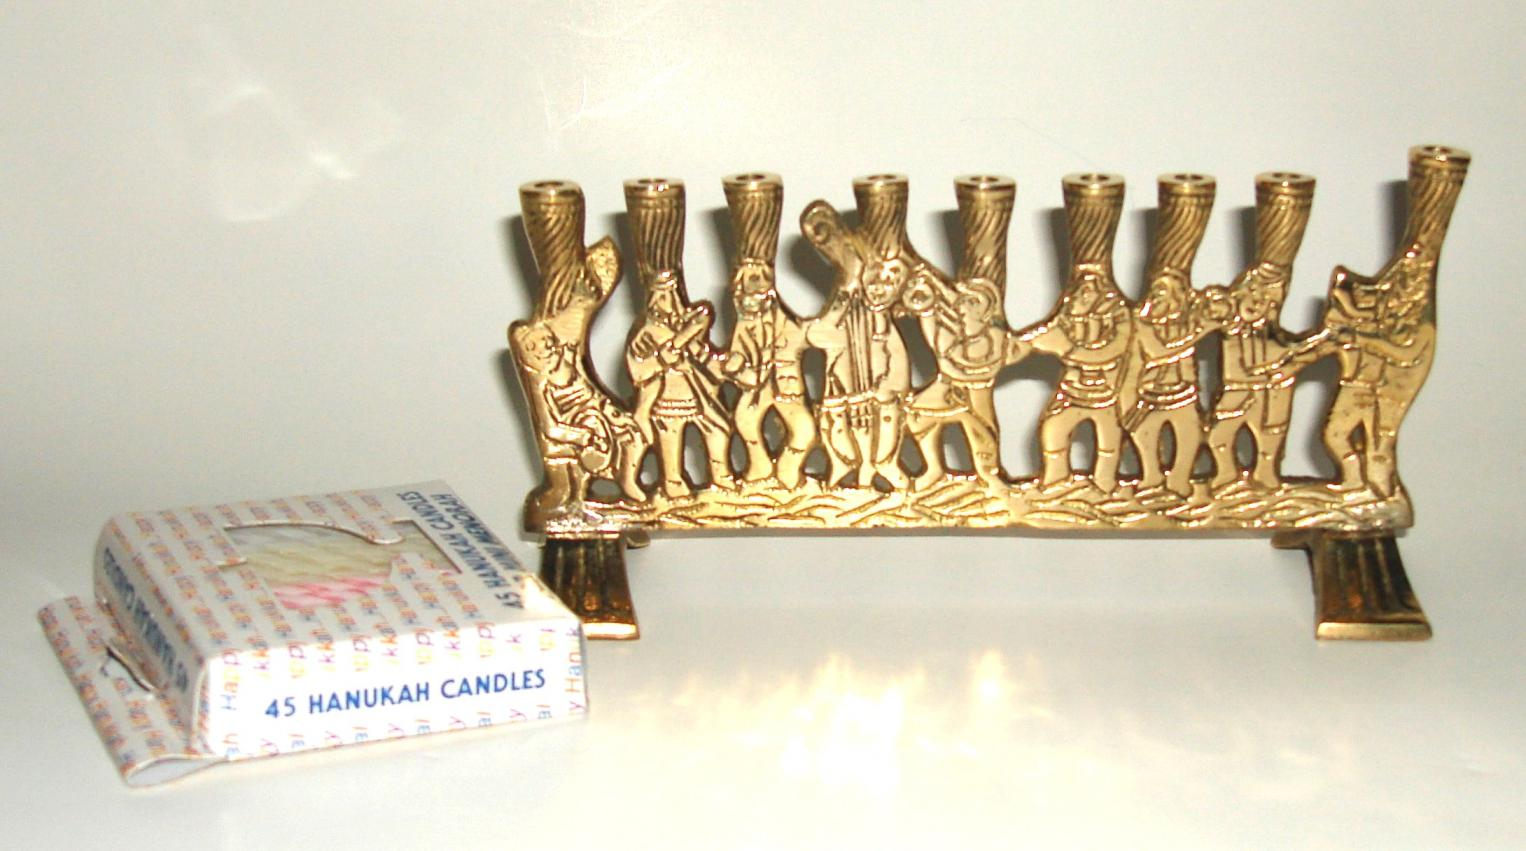 small brass Chanukah menorah with musicians